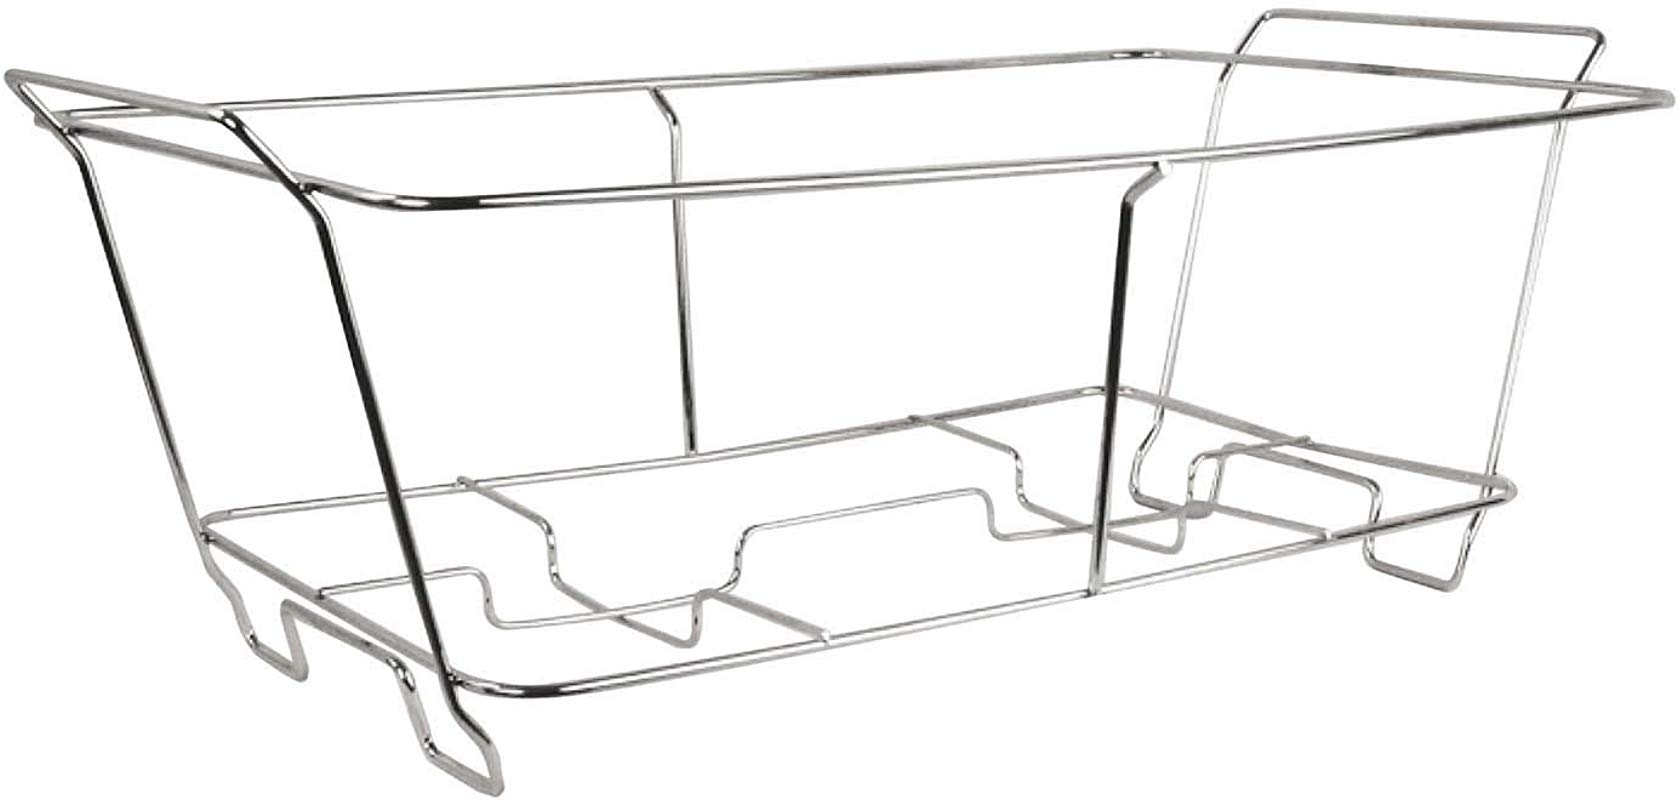 Winco Wire Stand For Aluminum Foil Tray